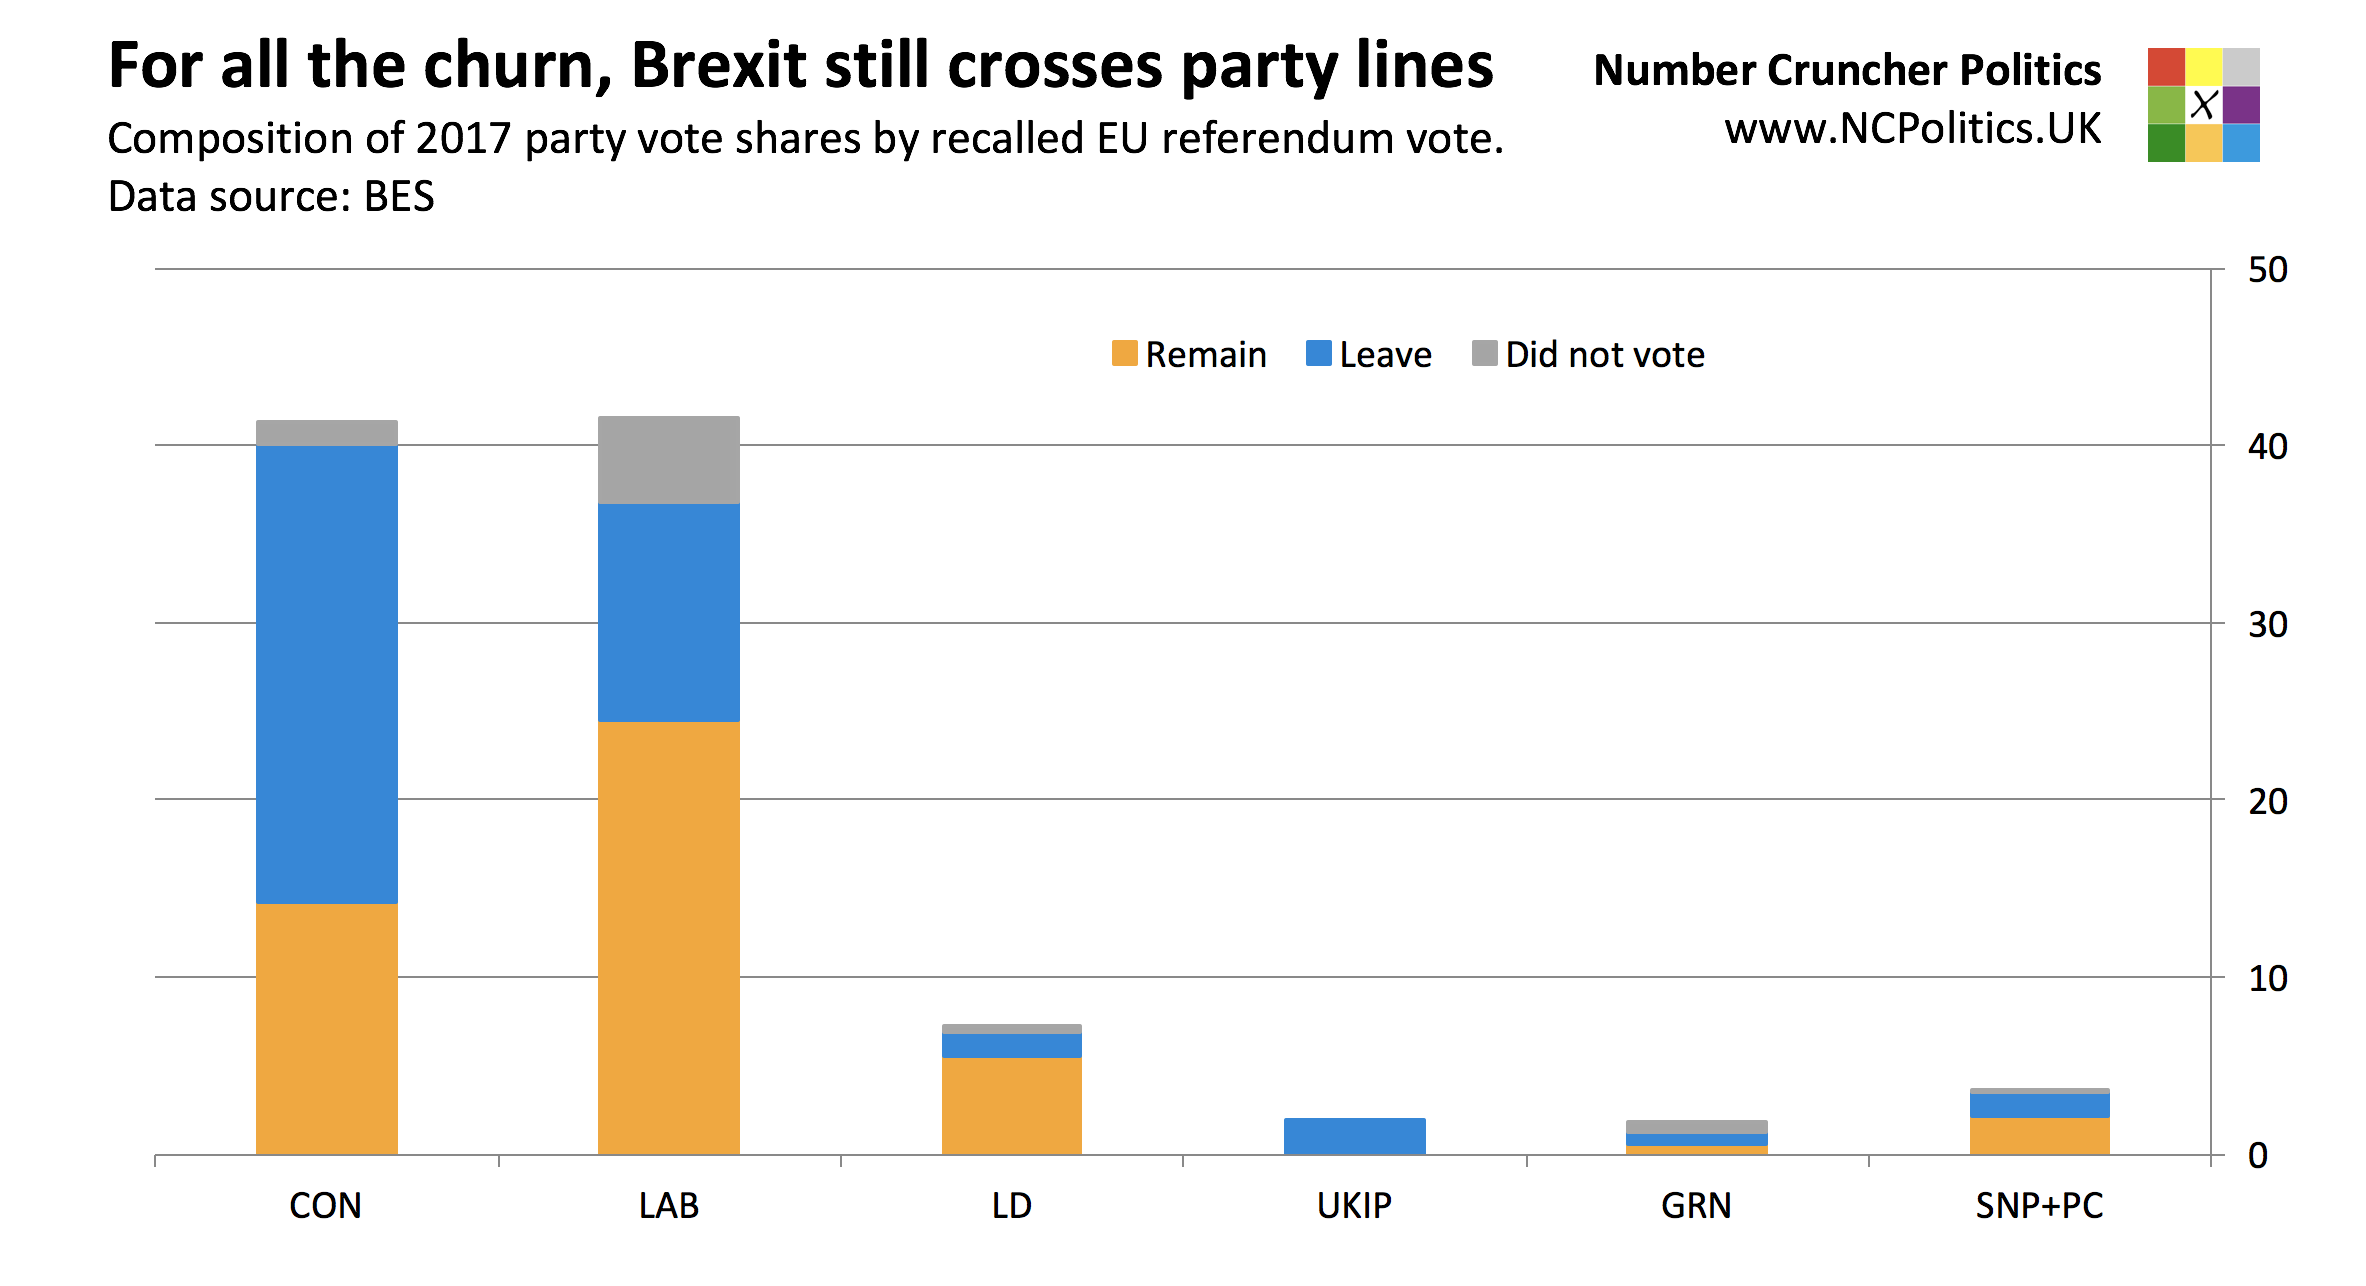 British Election Study 2017: For all the churn, Brexit still crosses party lines